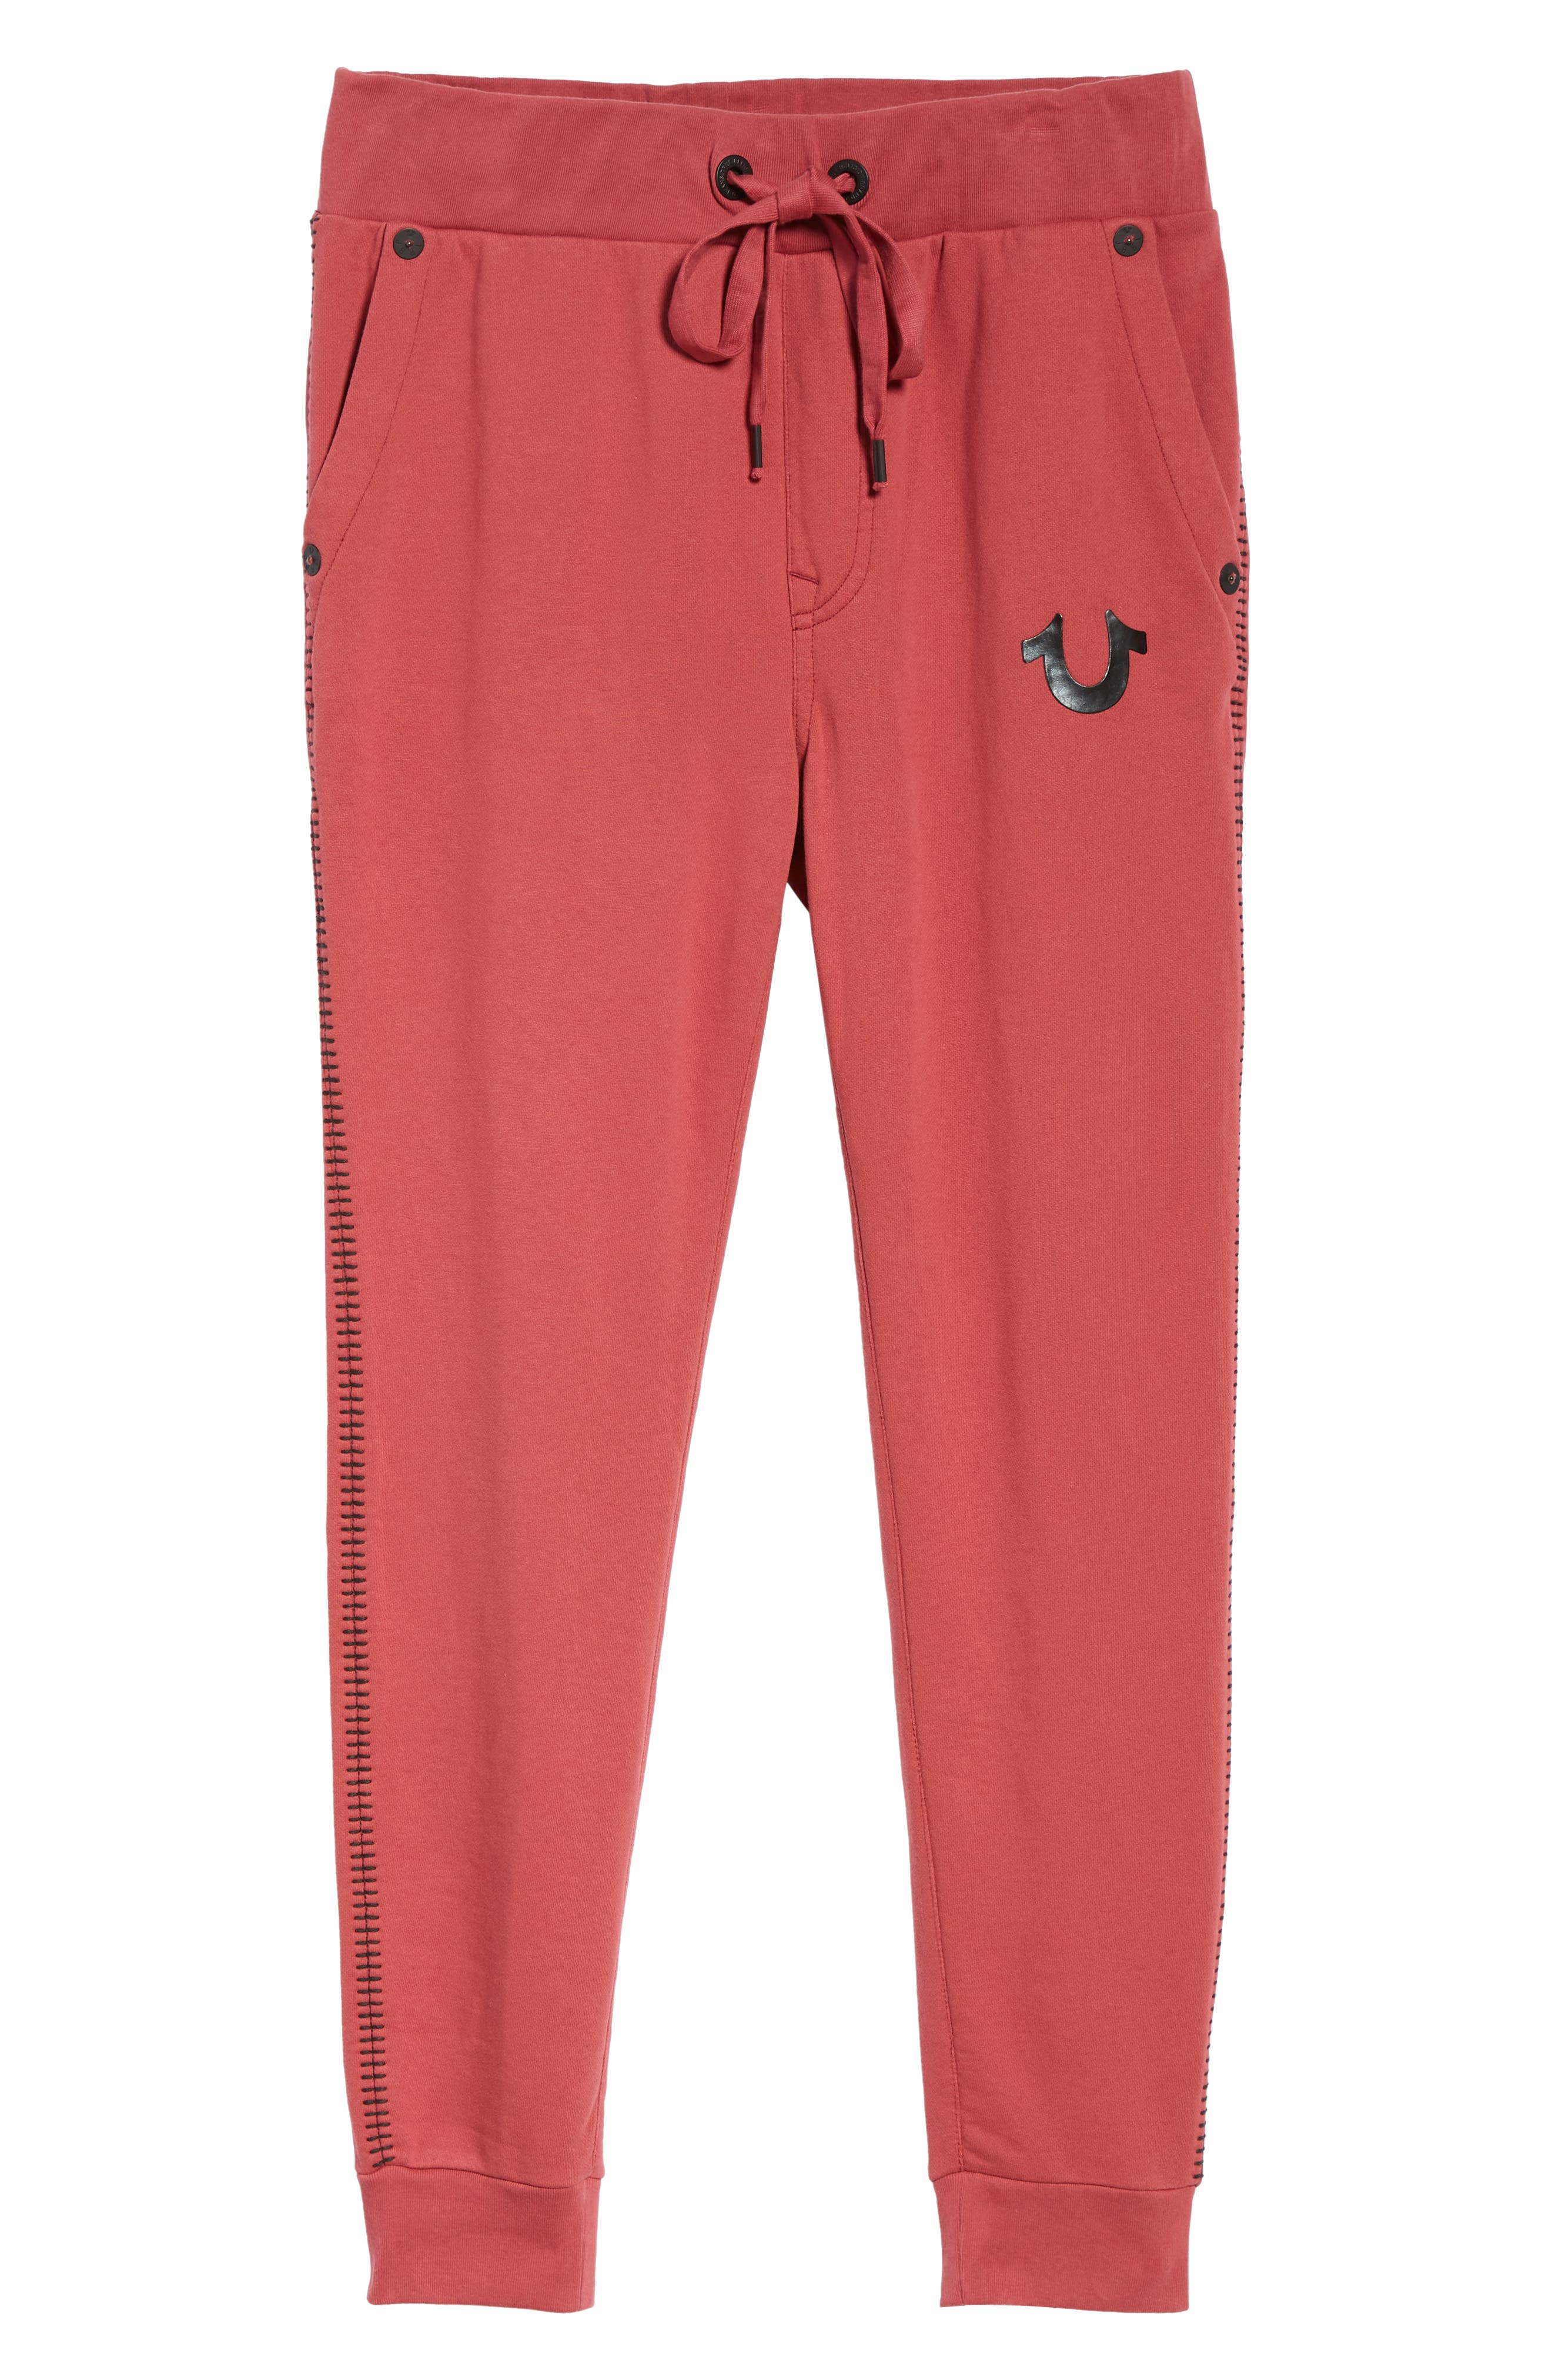 Metallic Buddha Sweatpants,                             Alternate thumbnail 6, color,                             GOTH RED